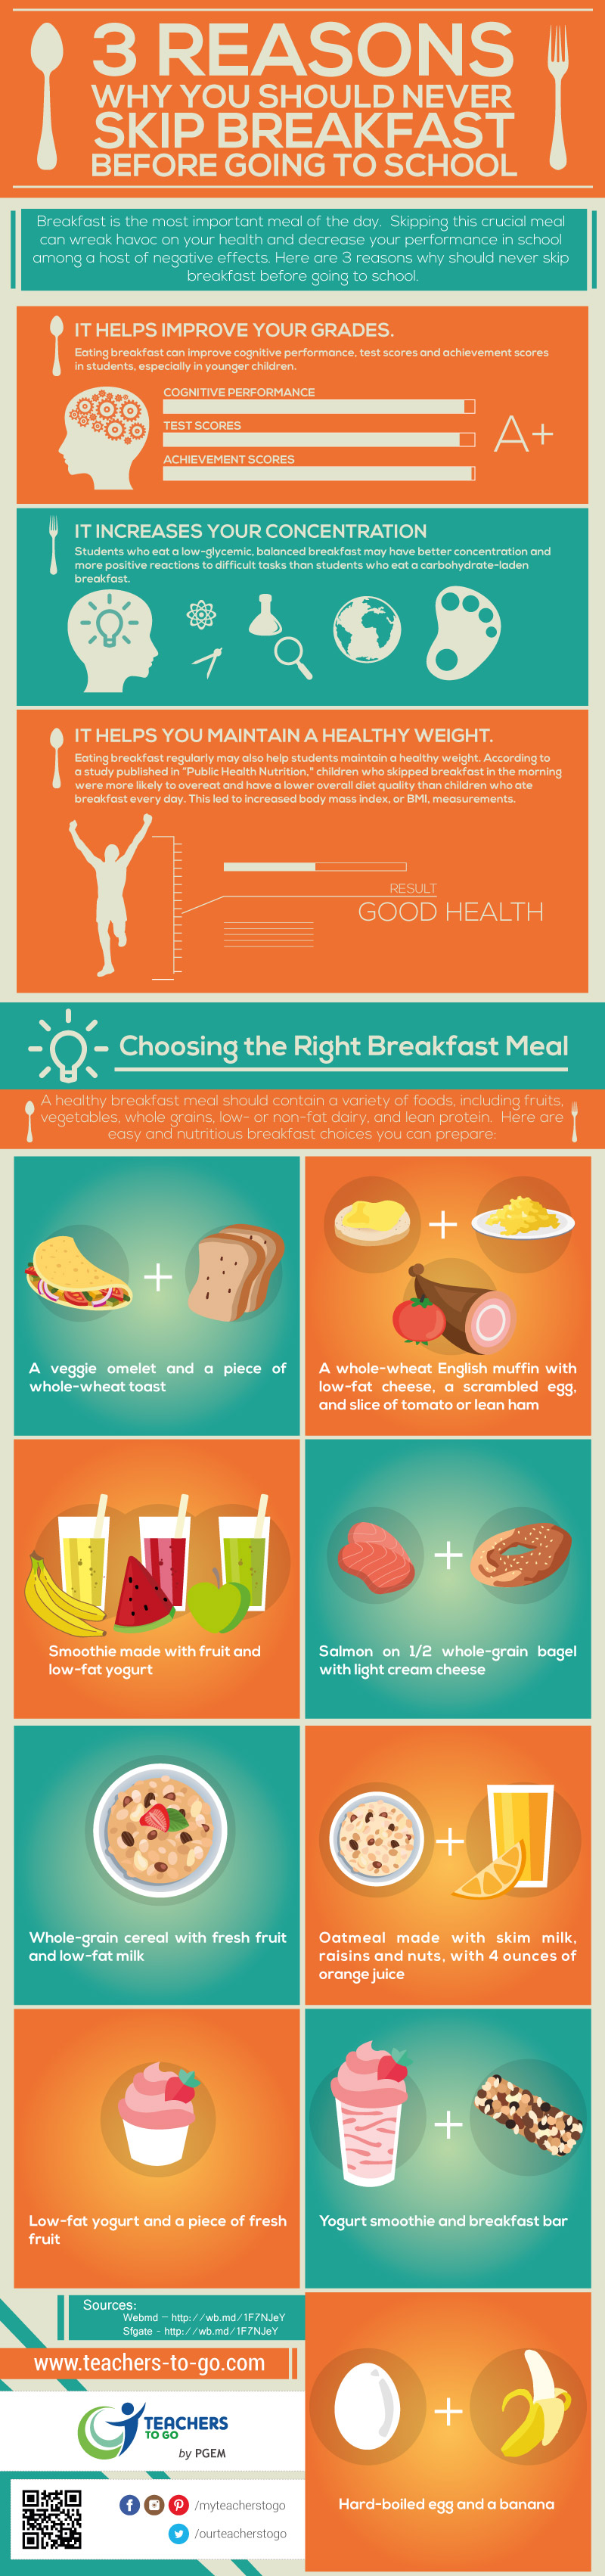 Why Skipping Breakfast Before Going to School is a Bad Idea - Infographic